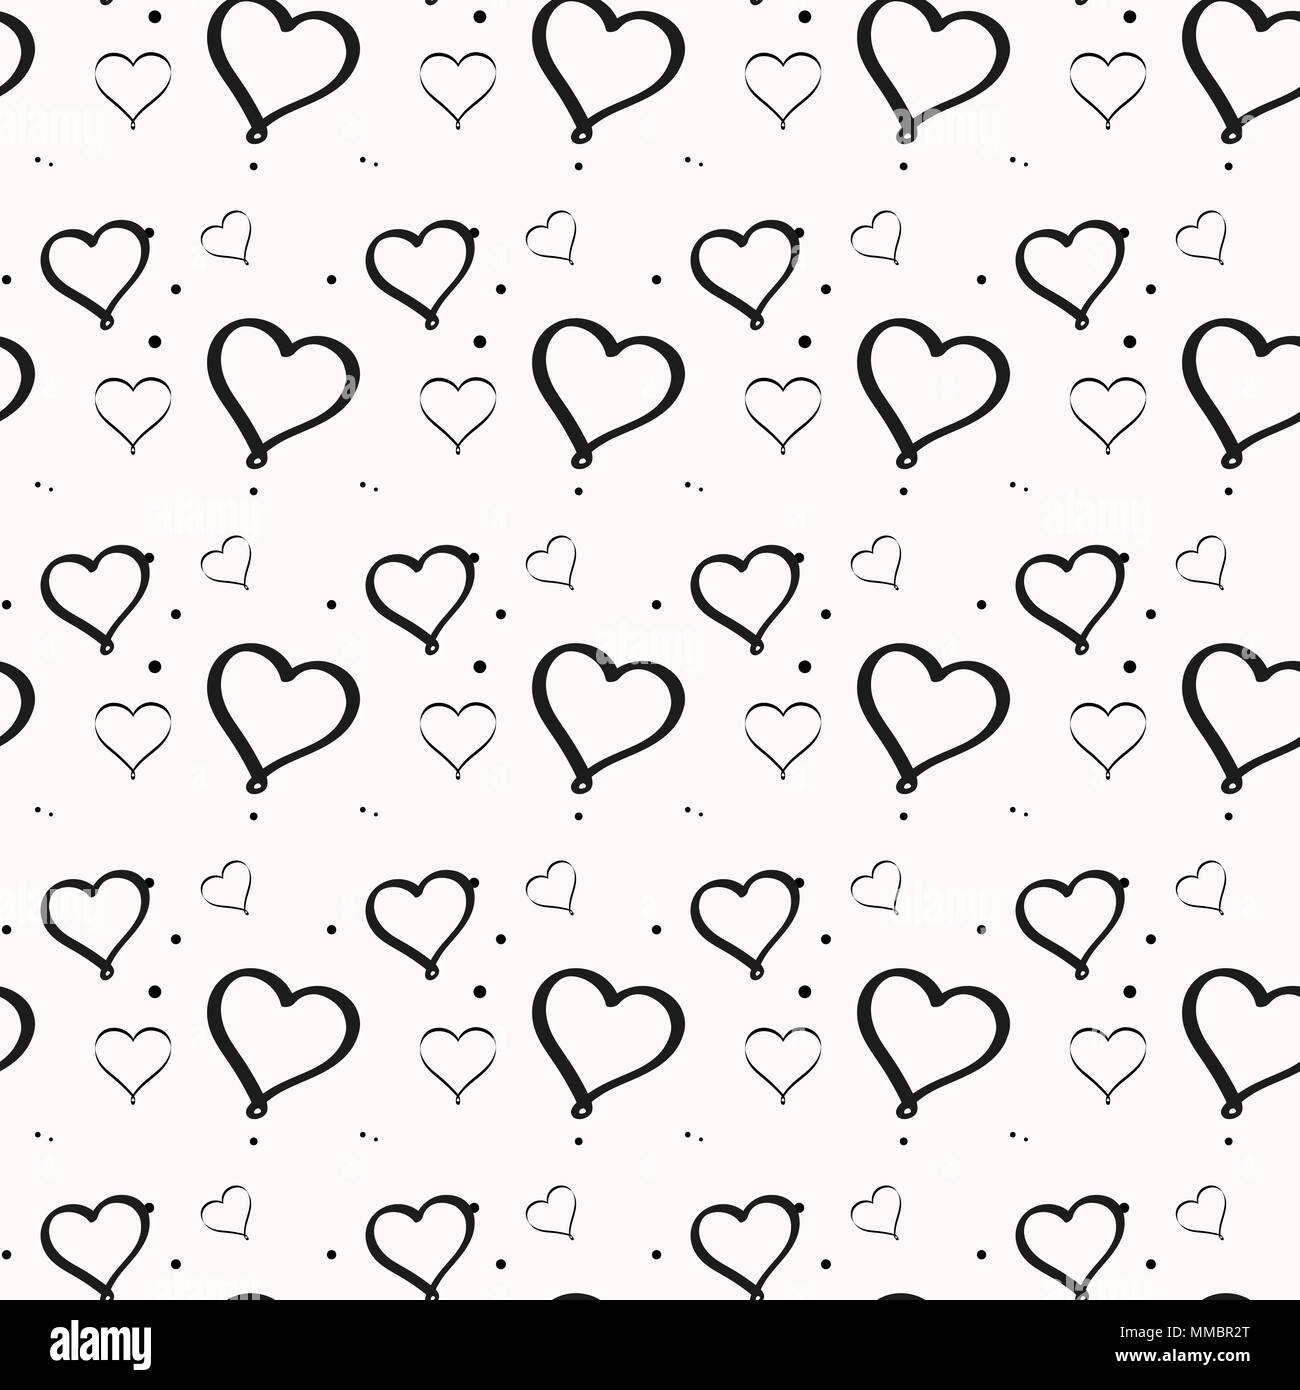 Black And White Minimalist Heart Seamless Pattern For Nursery